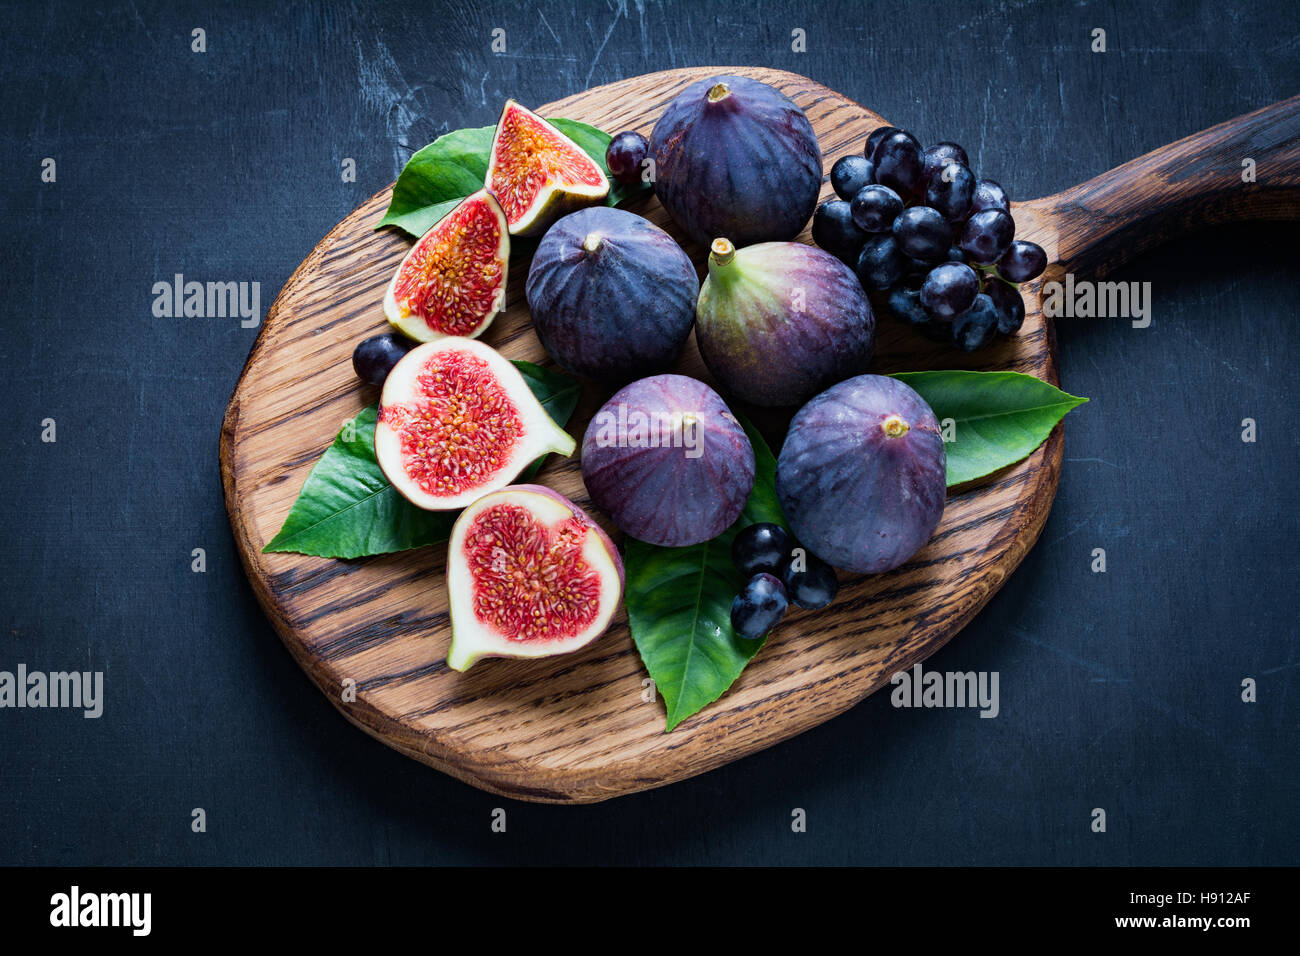 Cocinar Higos Frescos Fig Imágenes De Stock And Fig Fotos De Stock Alamy